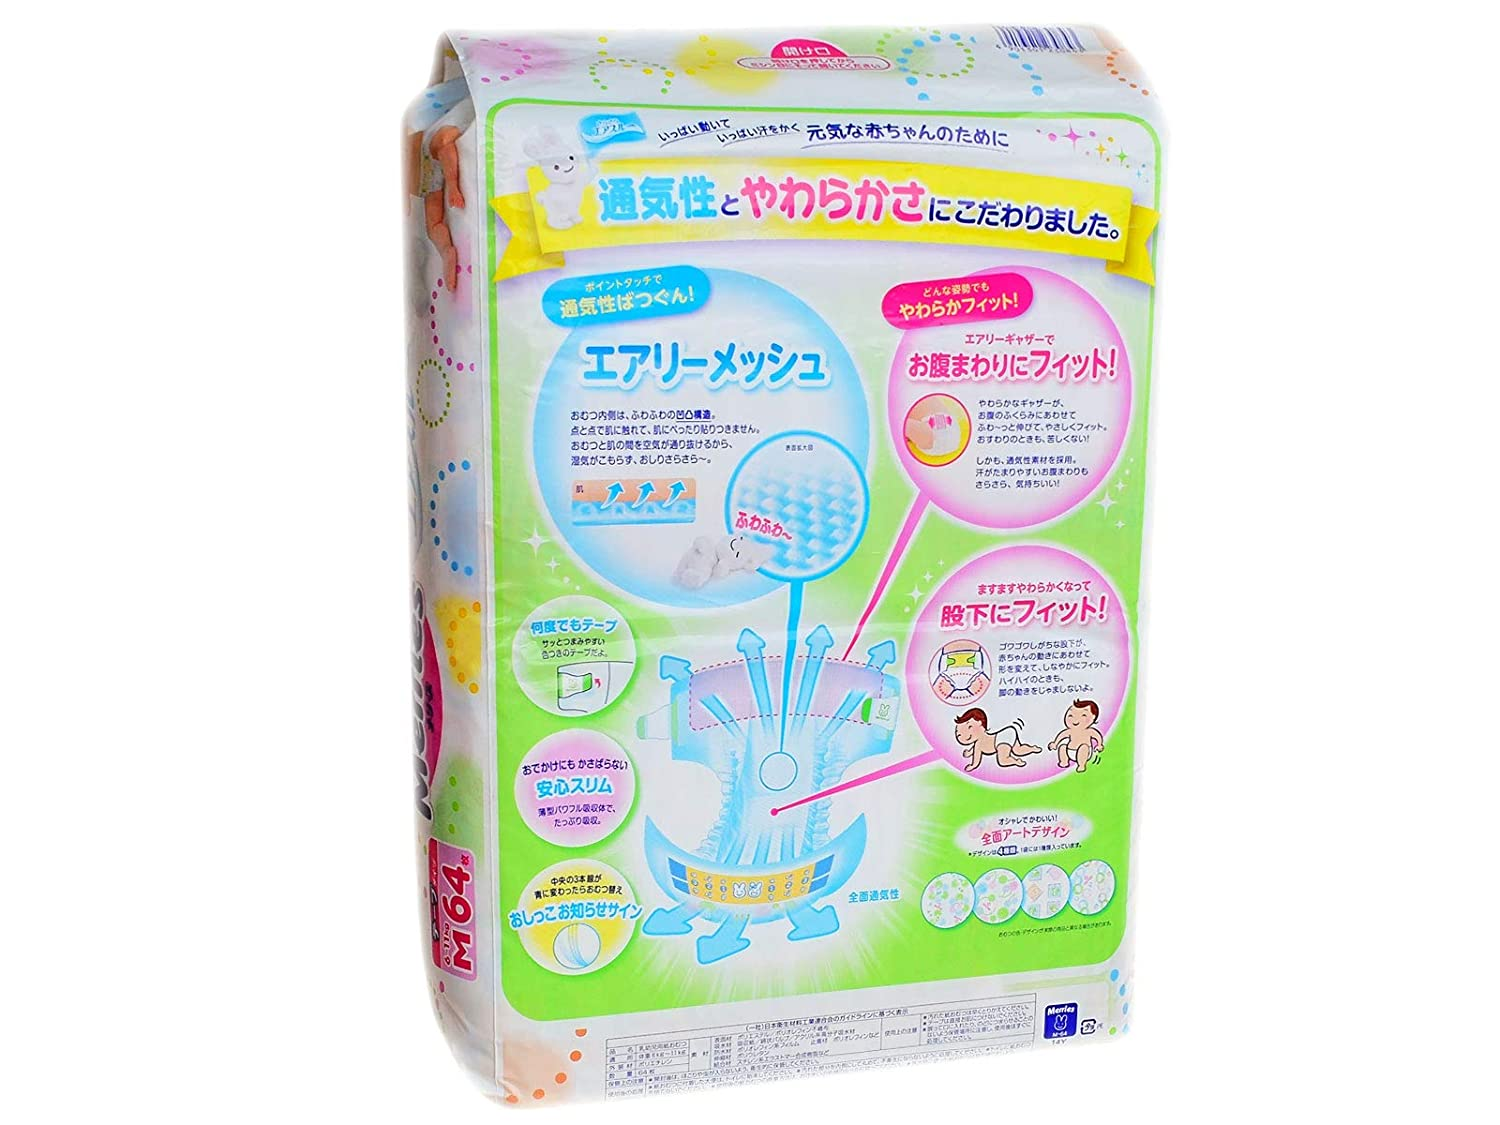 6-11 kg Couches Merries M //// Японские подгузники Merries M 6-11 kg Merries M //// Japanese diapers nappies 6-11 kg